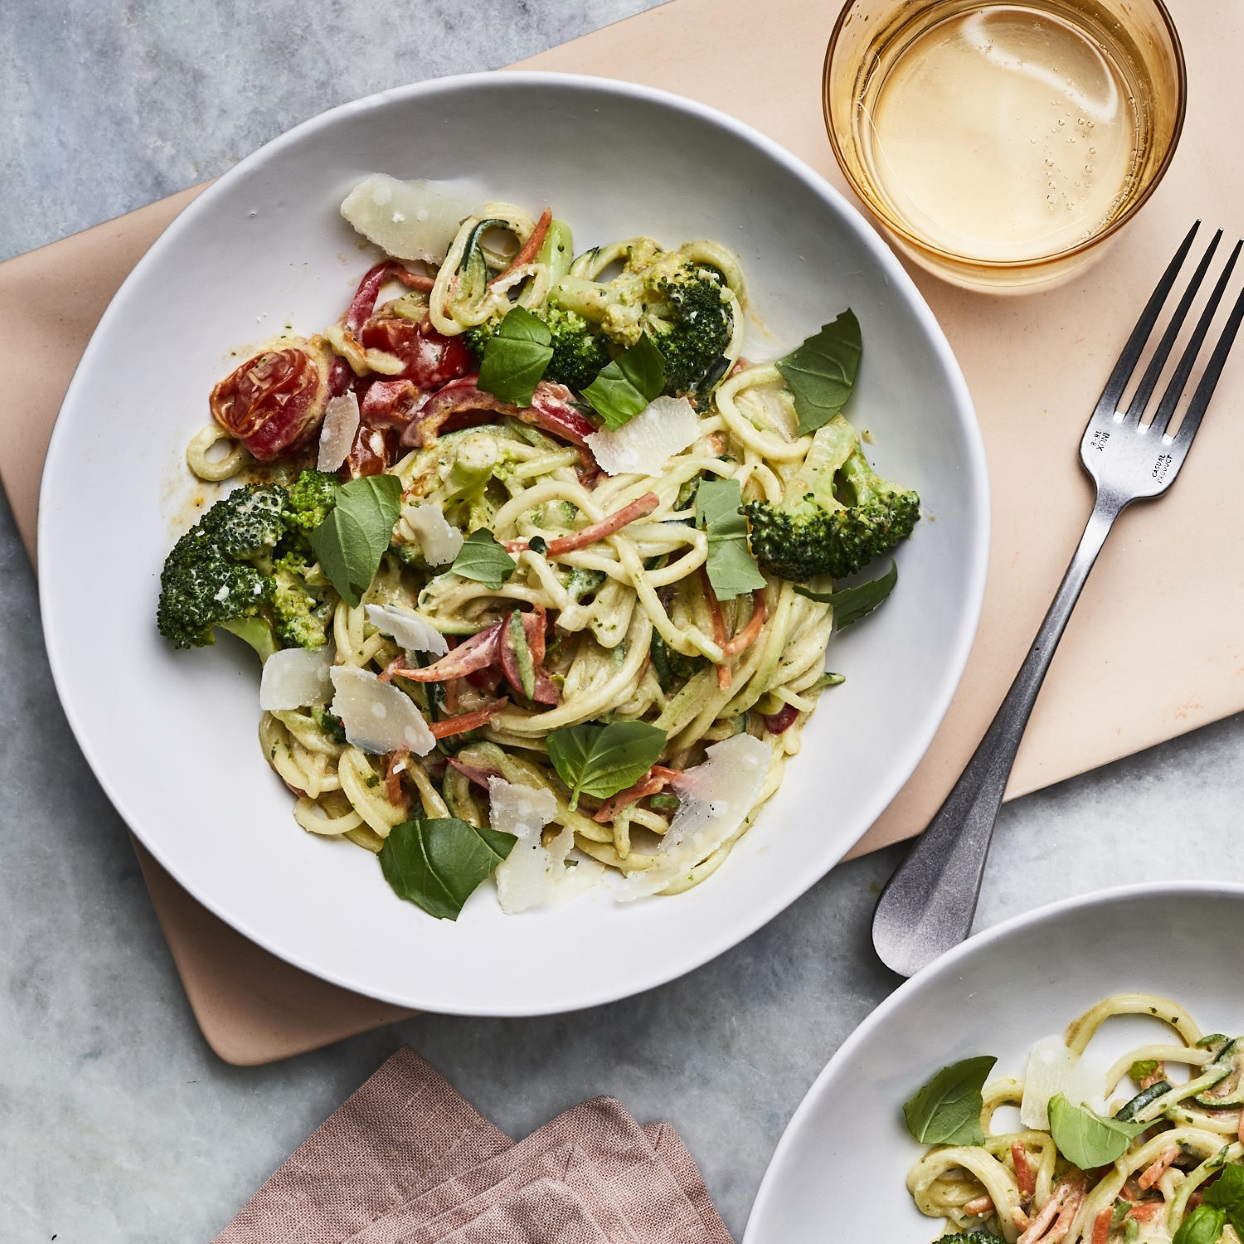 "This primavera recipe cuts carbs by swapping out the pasta for zucchini ""noodles."" This quick vegetarian dinner is chock-full of colorful vegetables smothered in a light, creamy sauce. We like using prepackaged spiralized zucchini noodles to keep this recipe ultra-fast, but if you have a spiralizer and zucchini on hand, you can easily make your own. Source: EatingWell.com, January 2020"